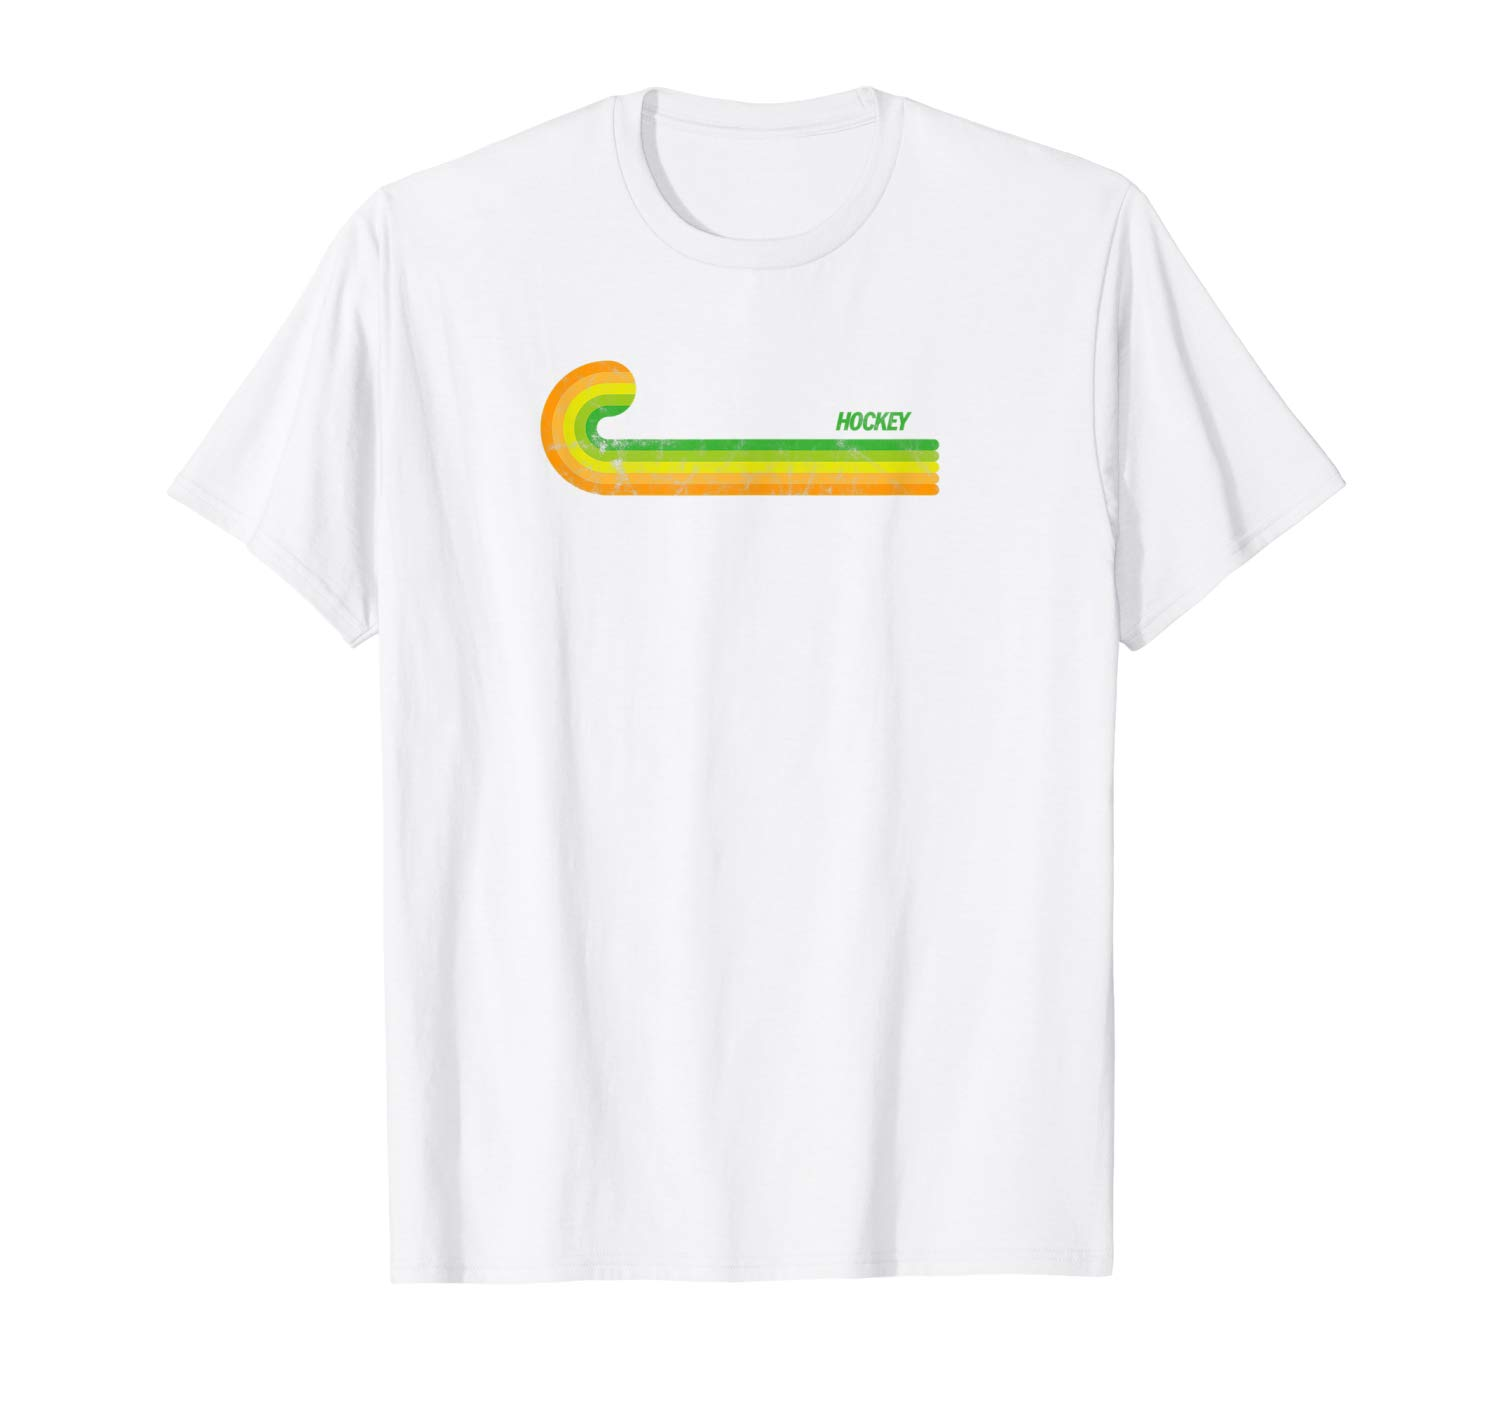 T-Shirt: Retro Hockeystick Feldhockey Spieler Trainer T-Shirt